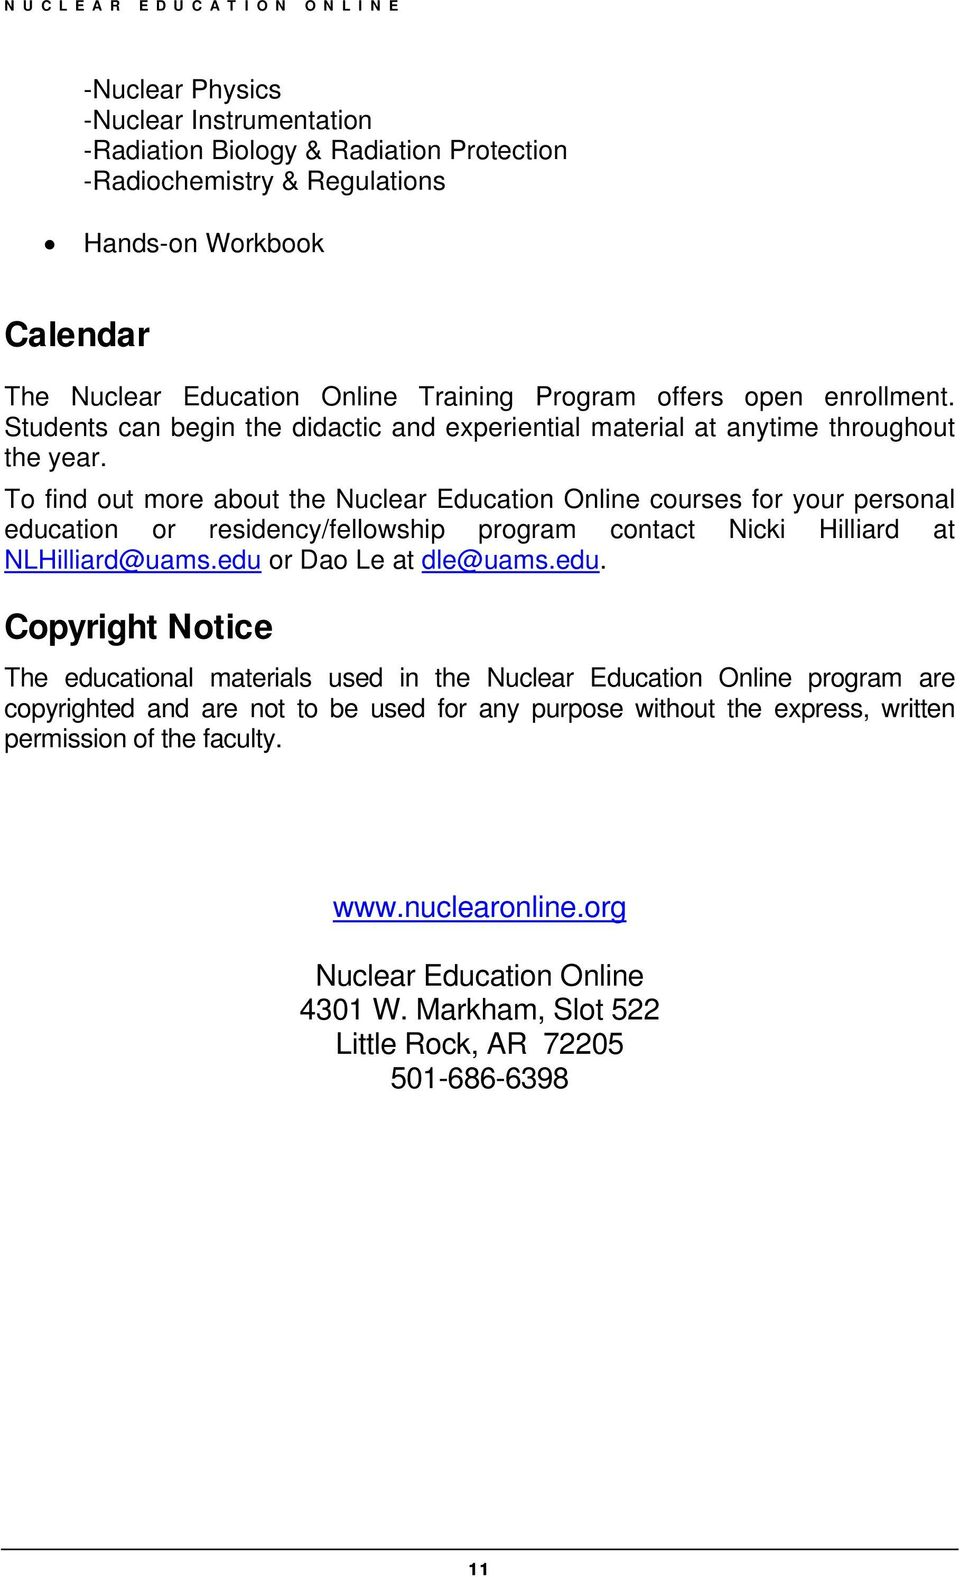 To find out more about the Nuclear Education Online courses for your personal educ